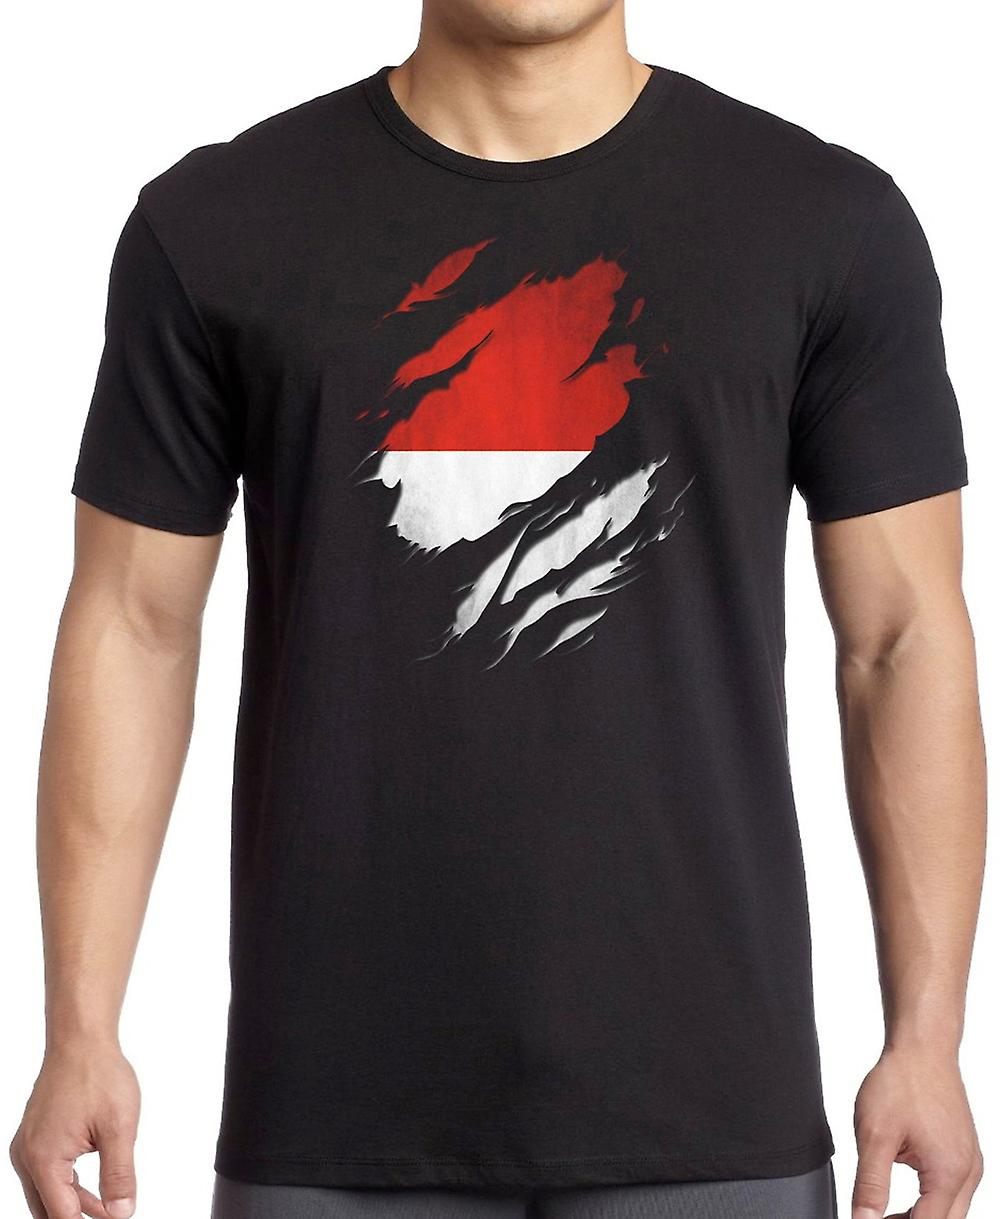 Indonesian Grunge Flag Ripped Effect T Shirt